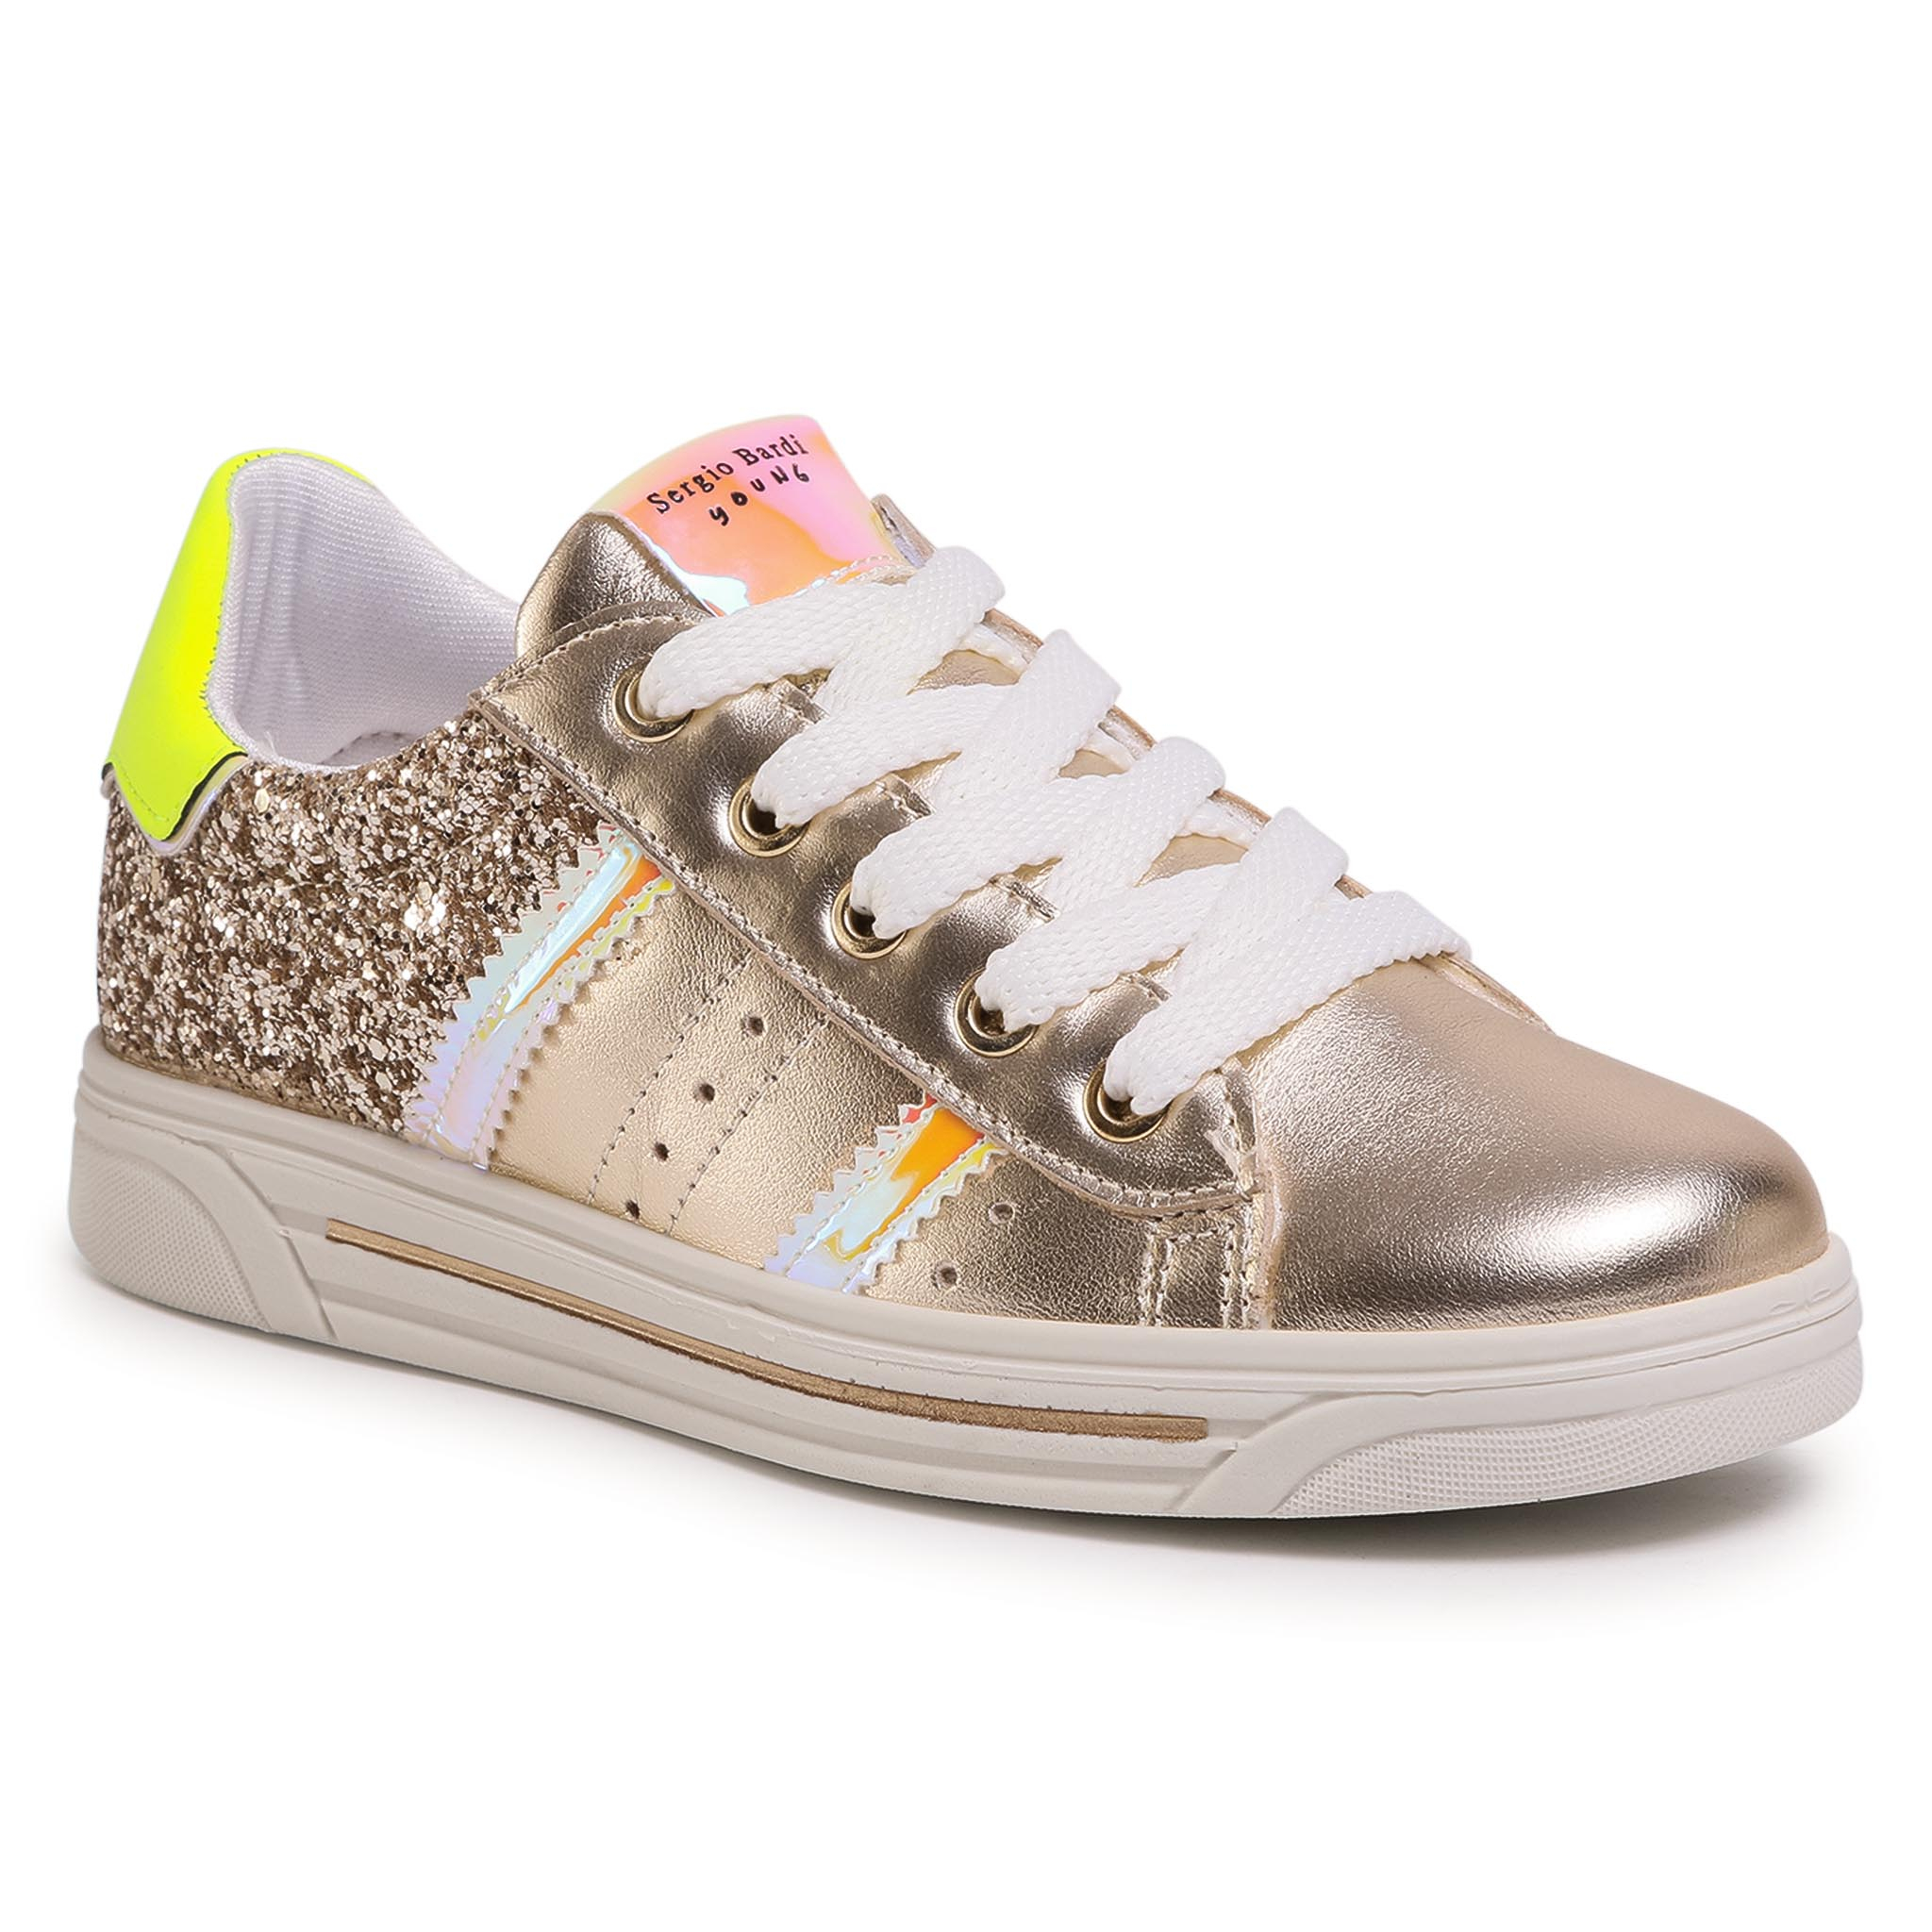 Sneakers SERGIO BARDI YOUNG - SBY-02-03-000040 611